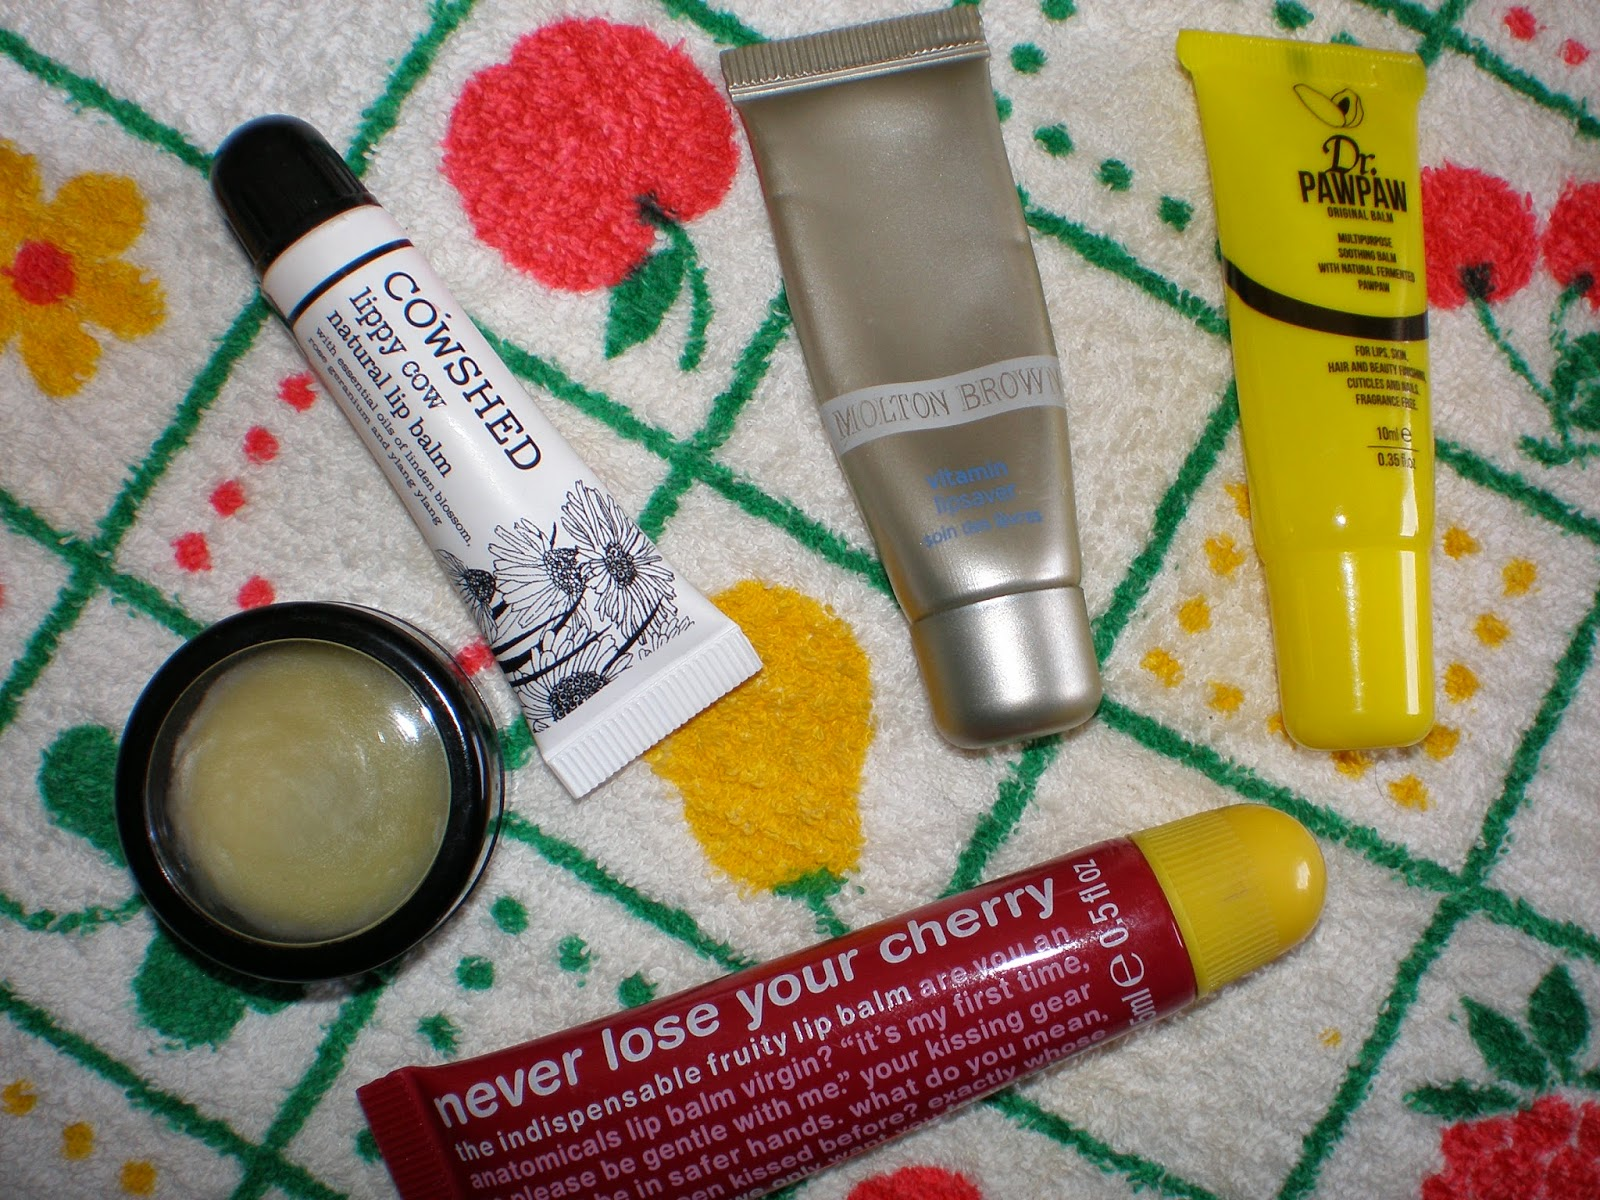 Cowshed lippy cow, Dr. Pawpaw multipurpose soothing balm, Anatomicals Never Lose your cherry, PotionWitch Apothecary Honey Bee Lip Balm, Molton Brown vitamin lipsaver